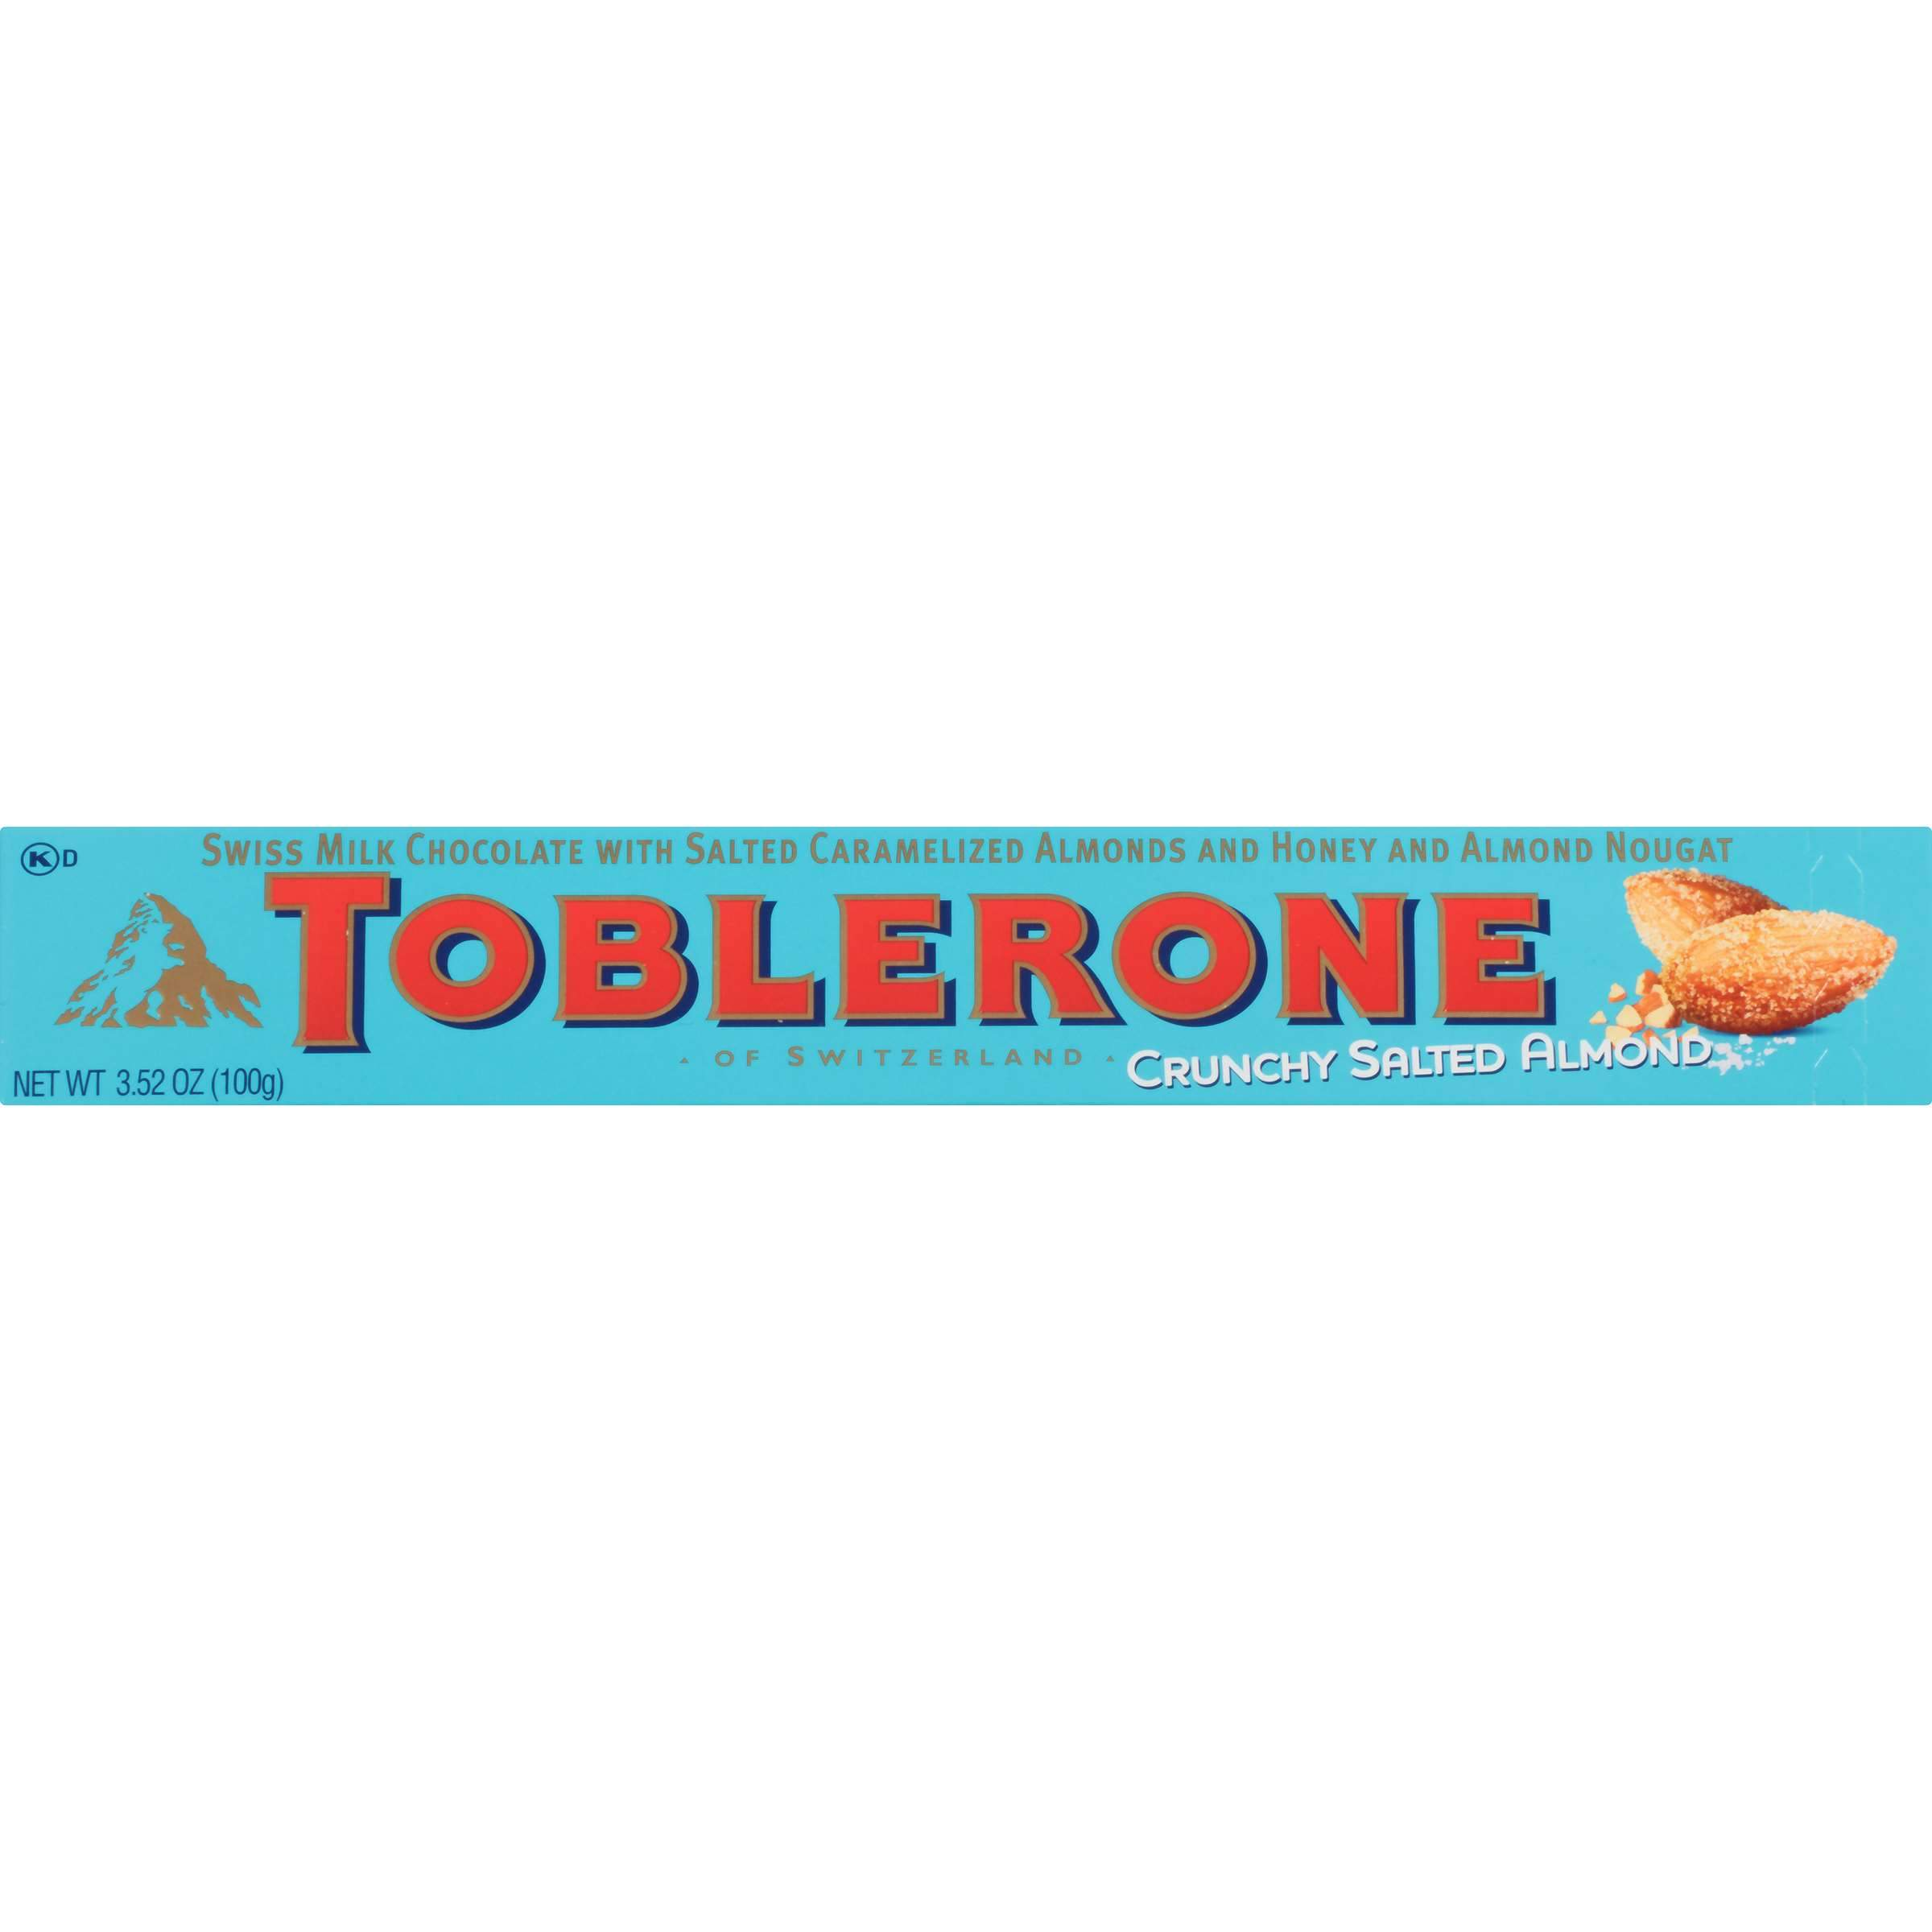 Toblerone Swiss Chocolate with Honey & Almond Nougat Meltable Toblerone Crunchy Salted Almond 3.52 Ounce